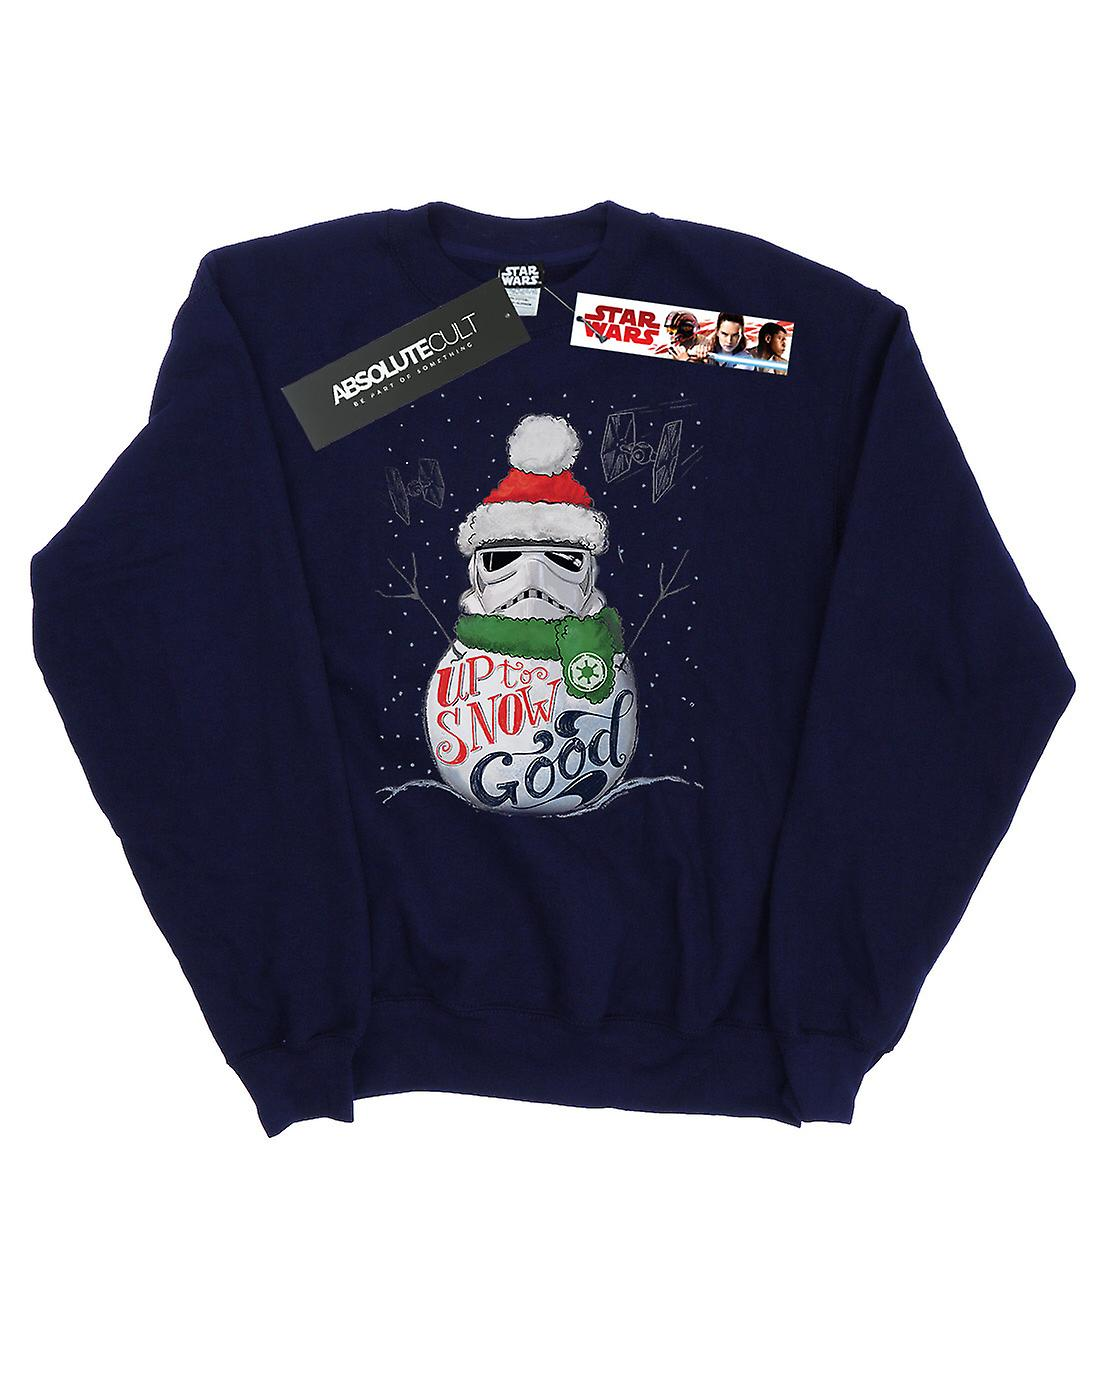 Star Wars Men's Stormtrooper Up To Snow Good Sweatshirt